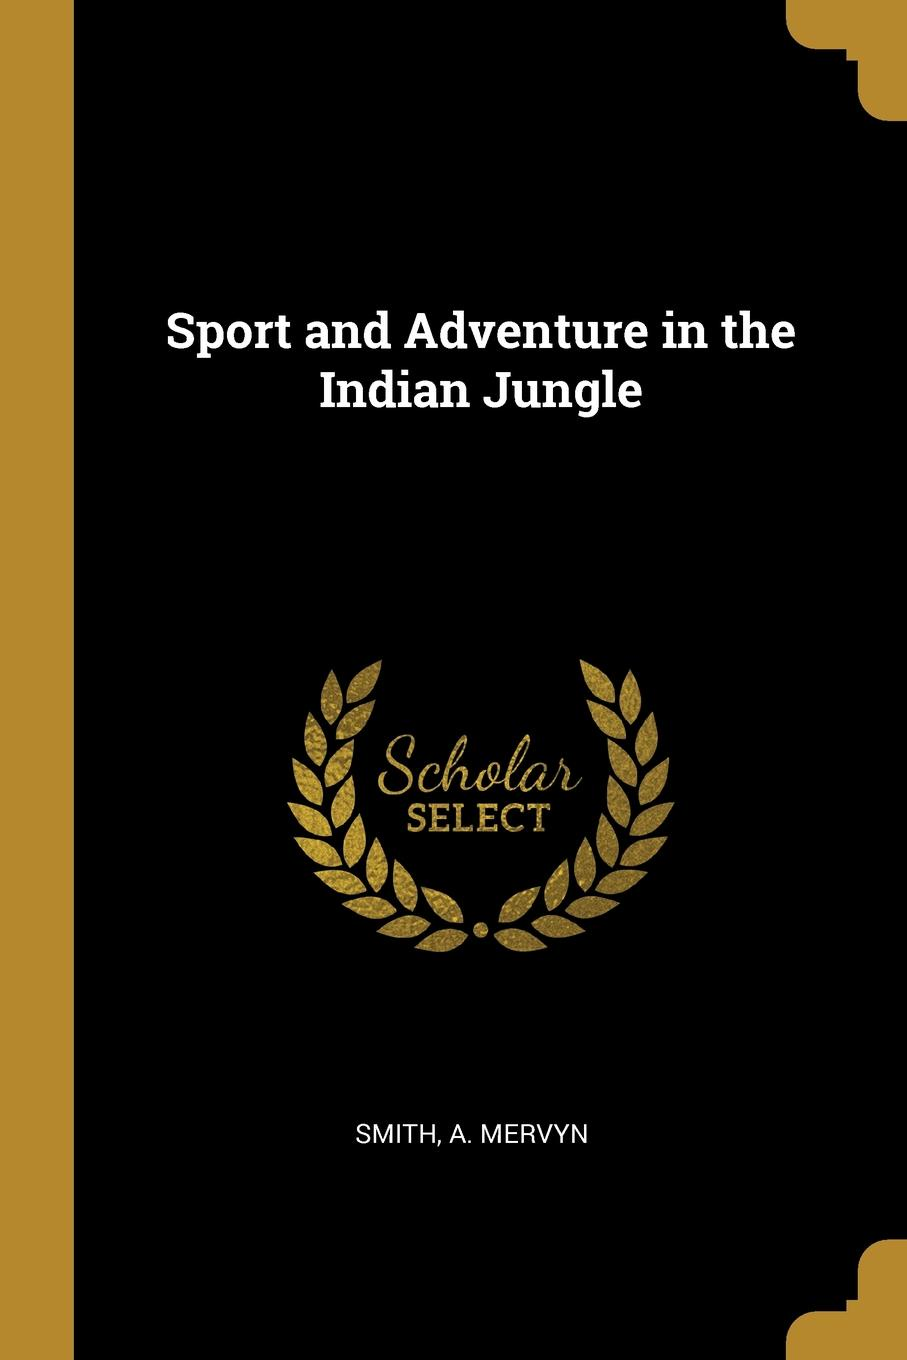 Smith A. Mervyn. Sport and Adventure in the Indian Jungle